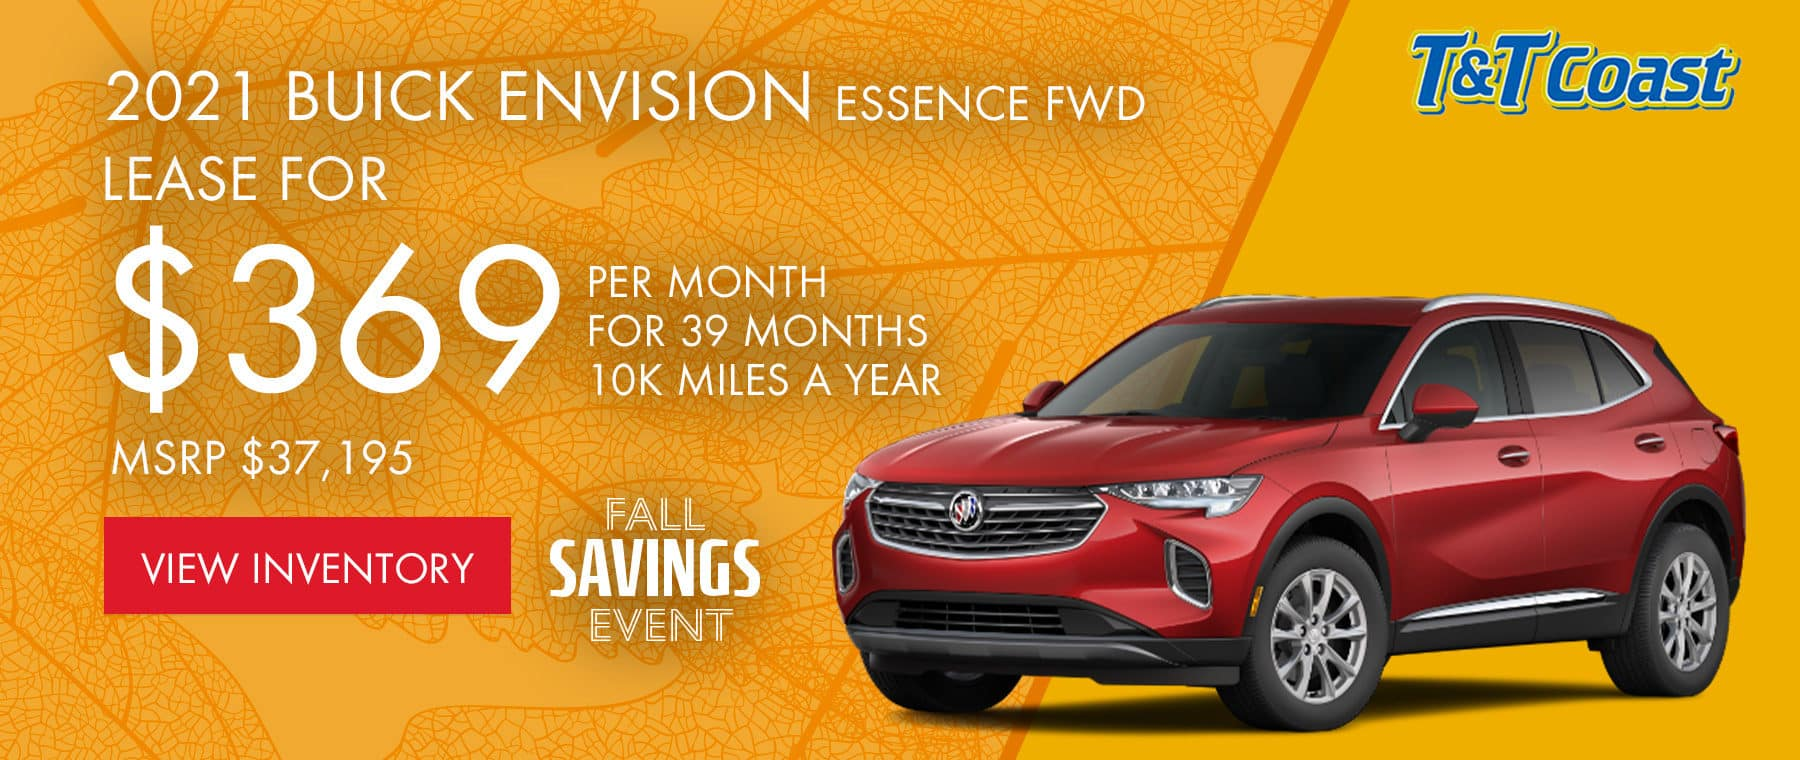 2021 BUICK ENVISION ESSENCE FWD MSRP $37,195 $369/MONTH LEASE! For 39 Months /10K Miles/Year